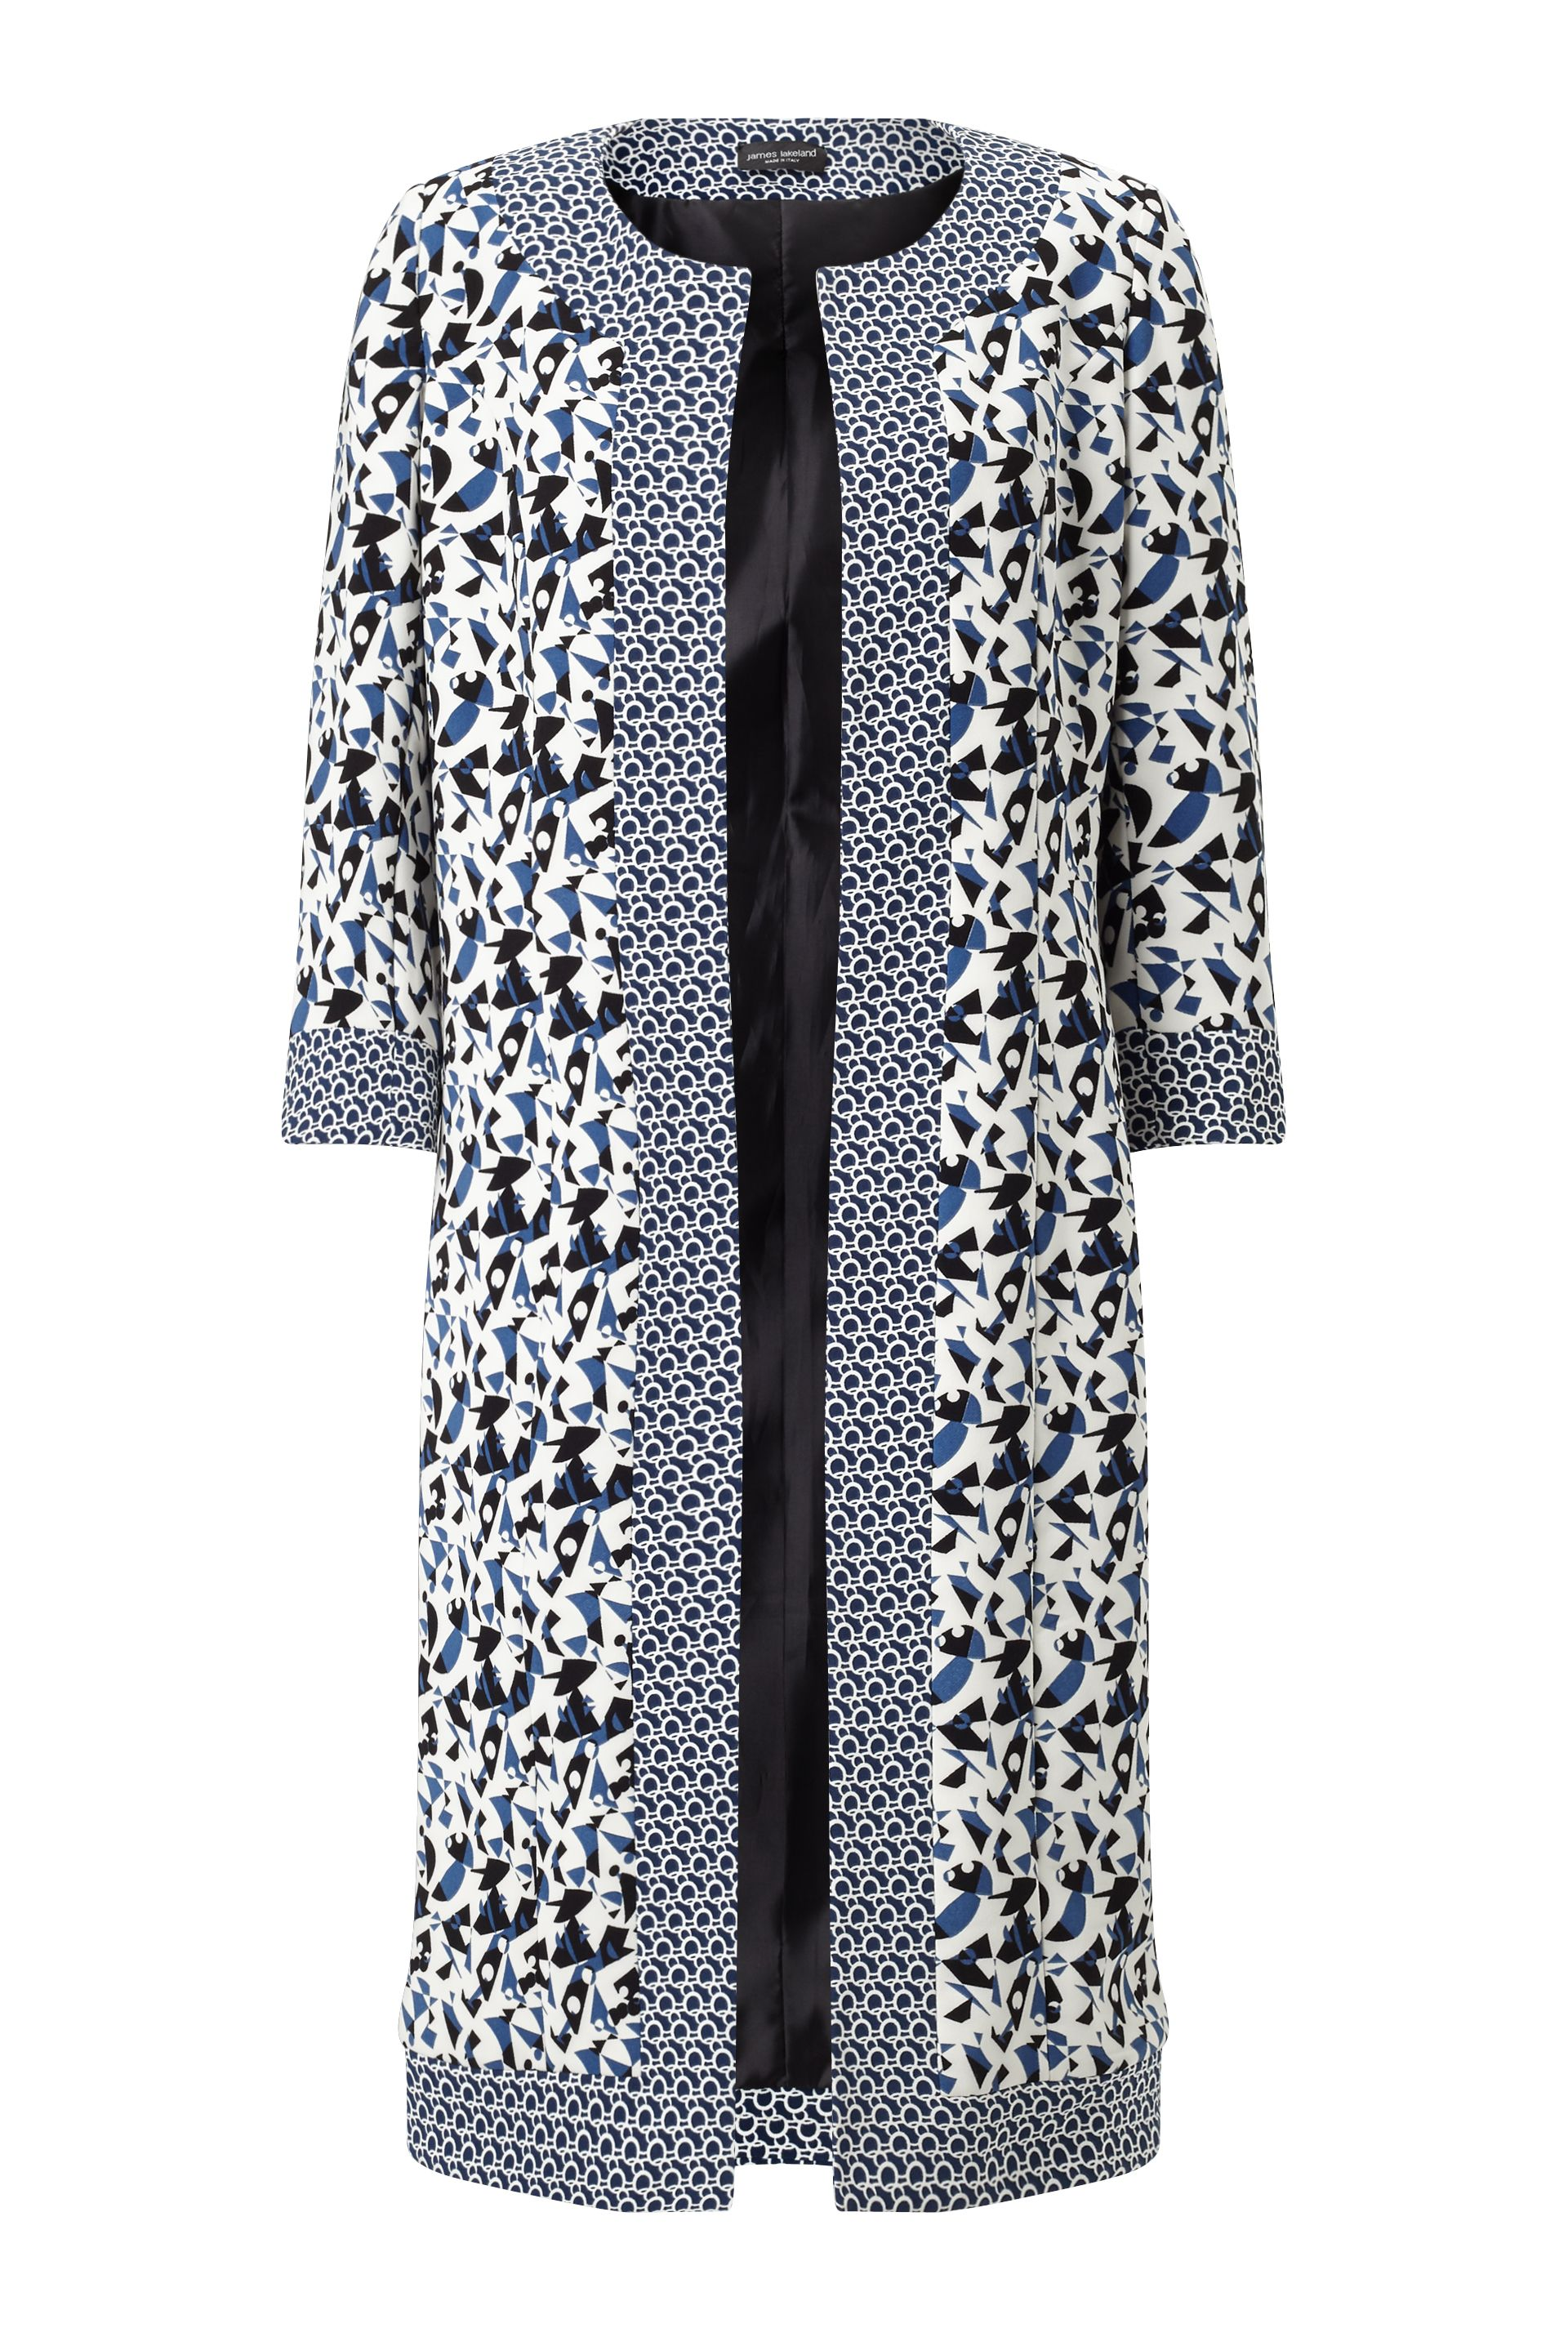 James Lakeland Print Long Jacket, Blue